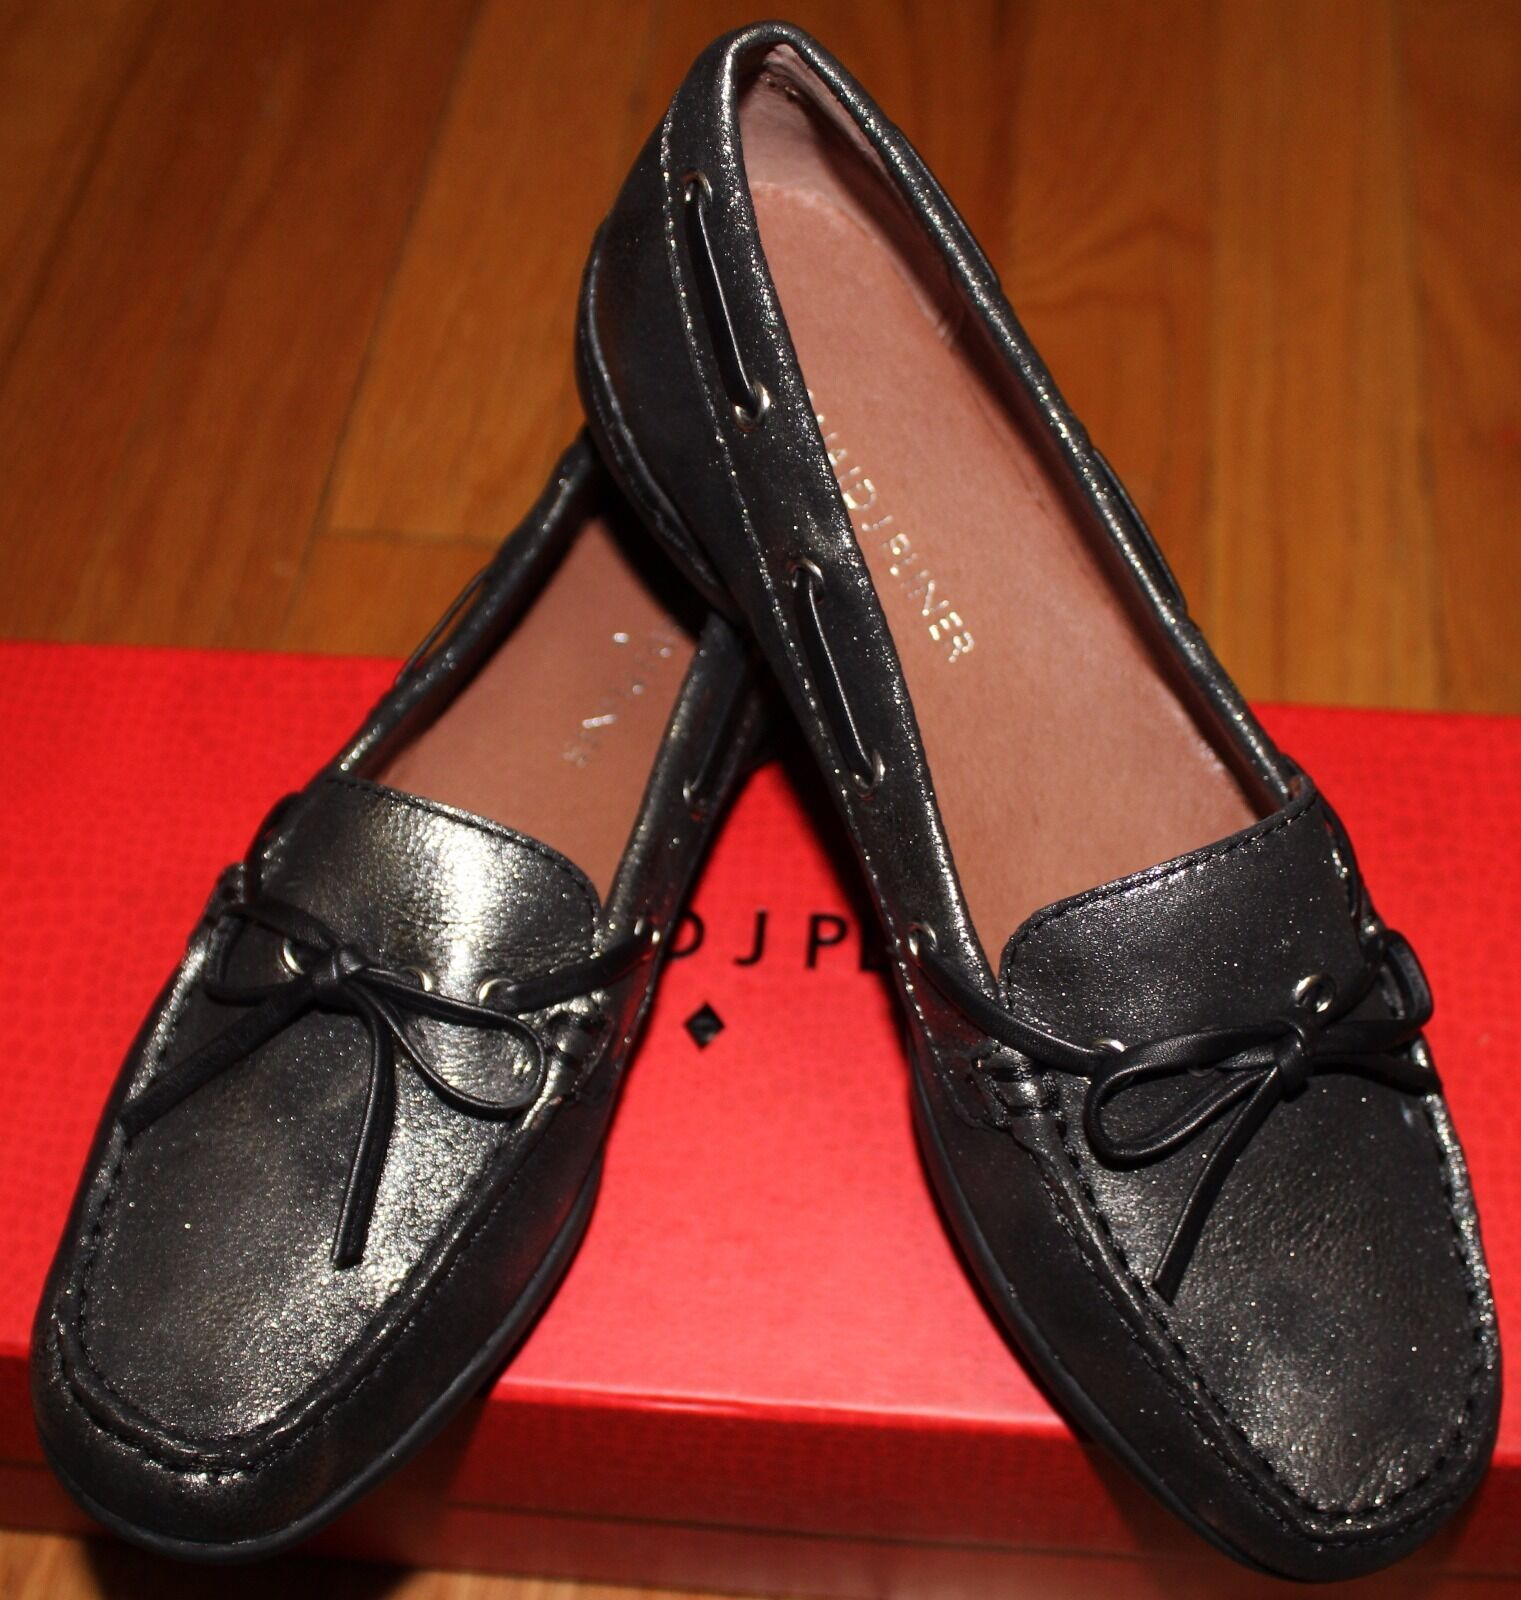 160 DONALD J PLINER PEWTER DUSTED METALLIC LOAFERS SZ 5M